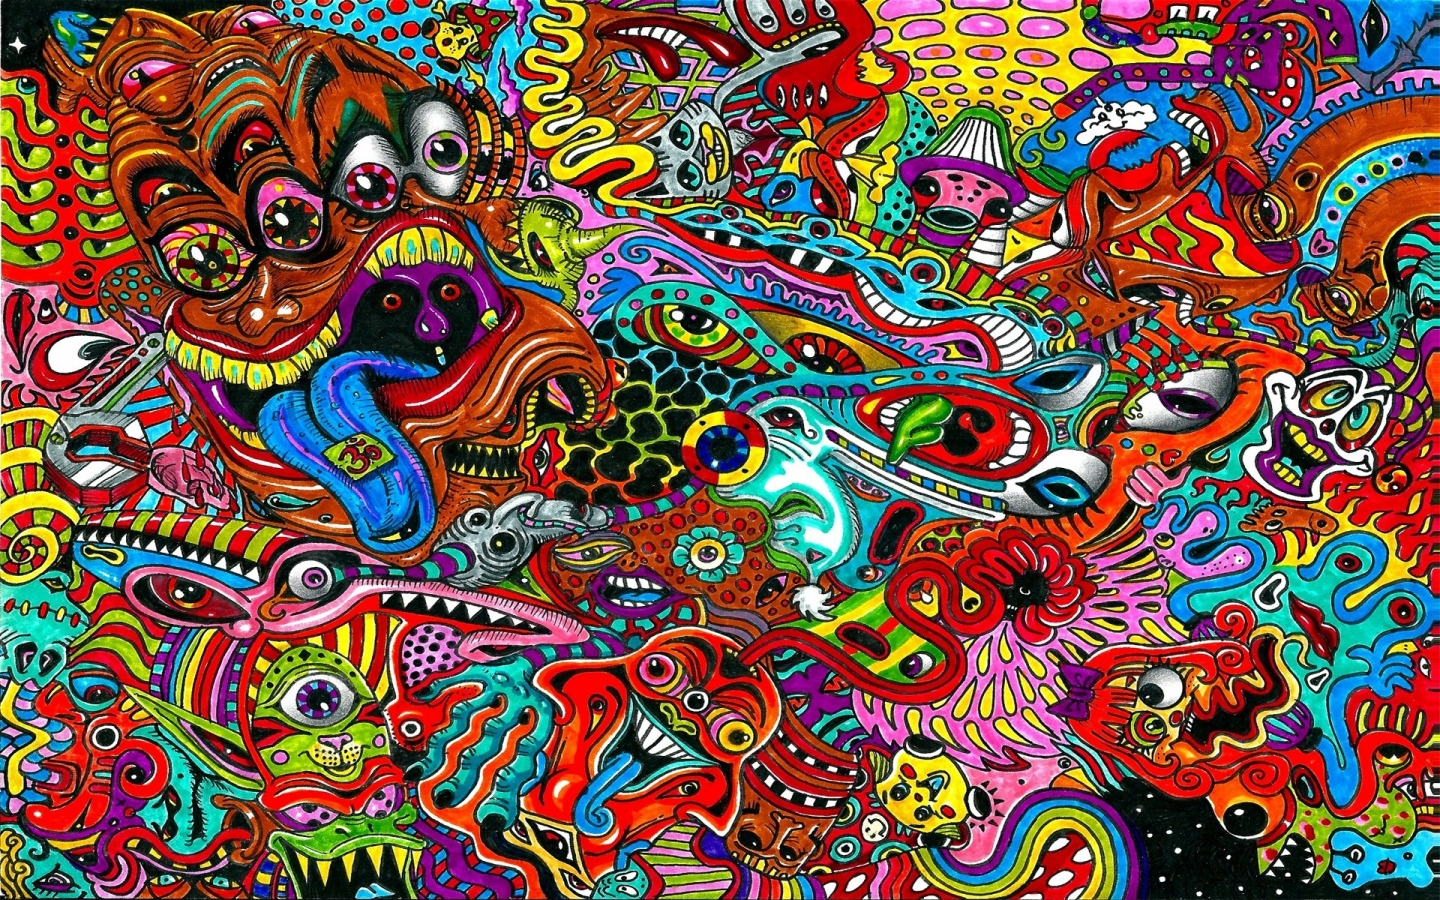 Psychedelic Wallpaper 1440x900